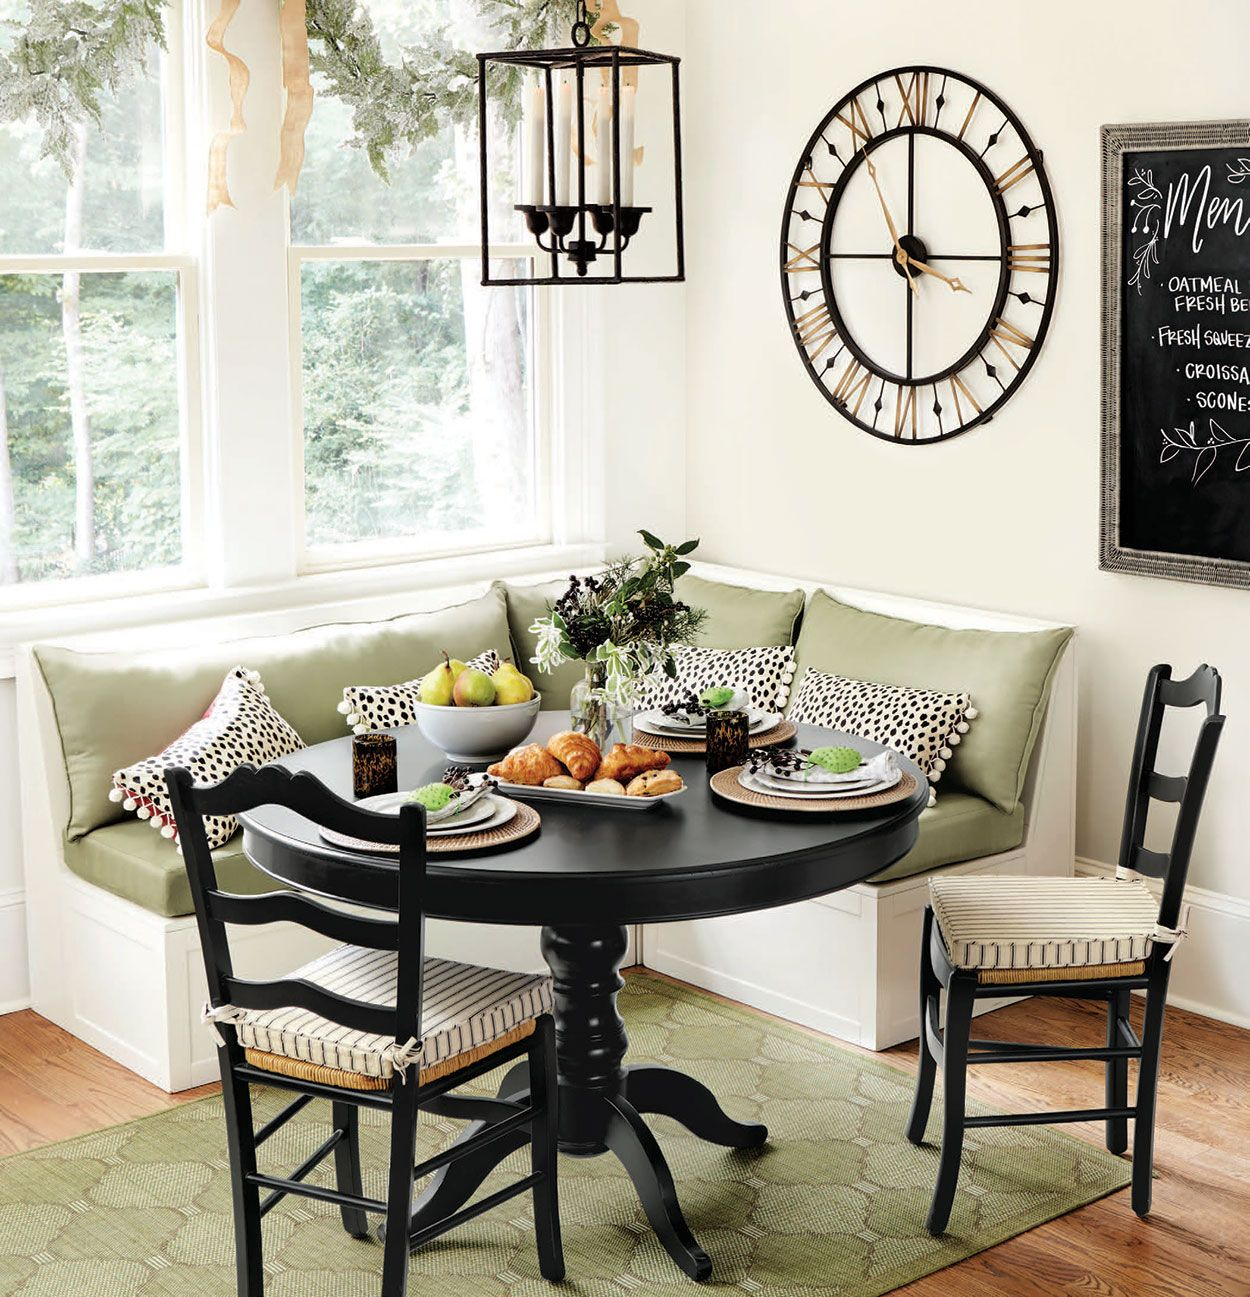 Dining rooms extra seating banquettes and kitchens for Kitchen come dining room ideas